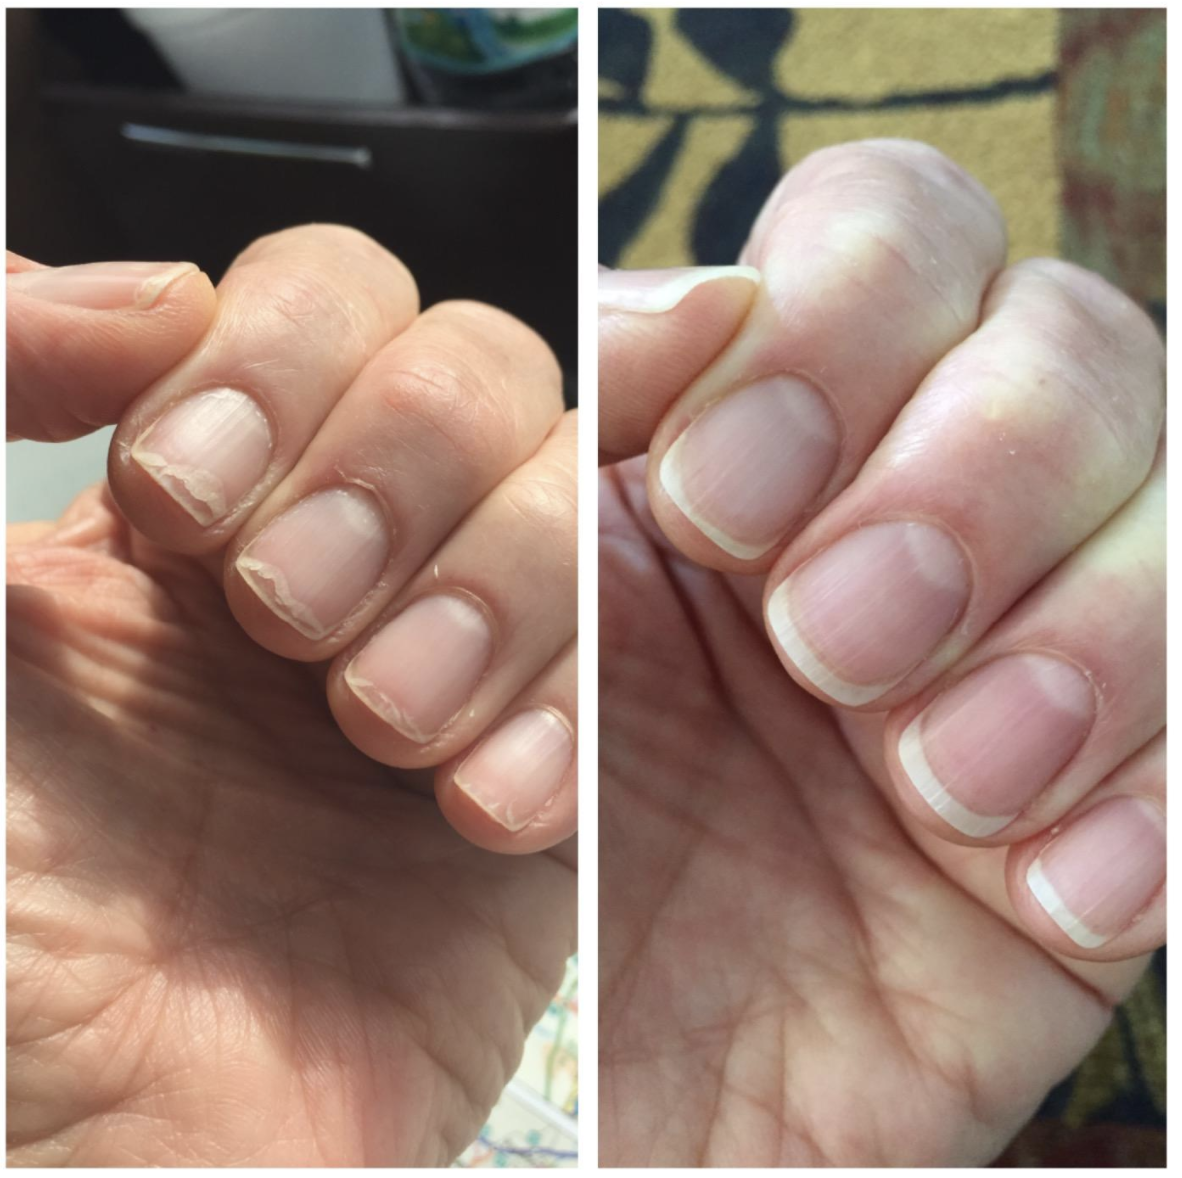 Before and after using cuticle nail oil